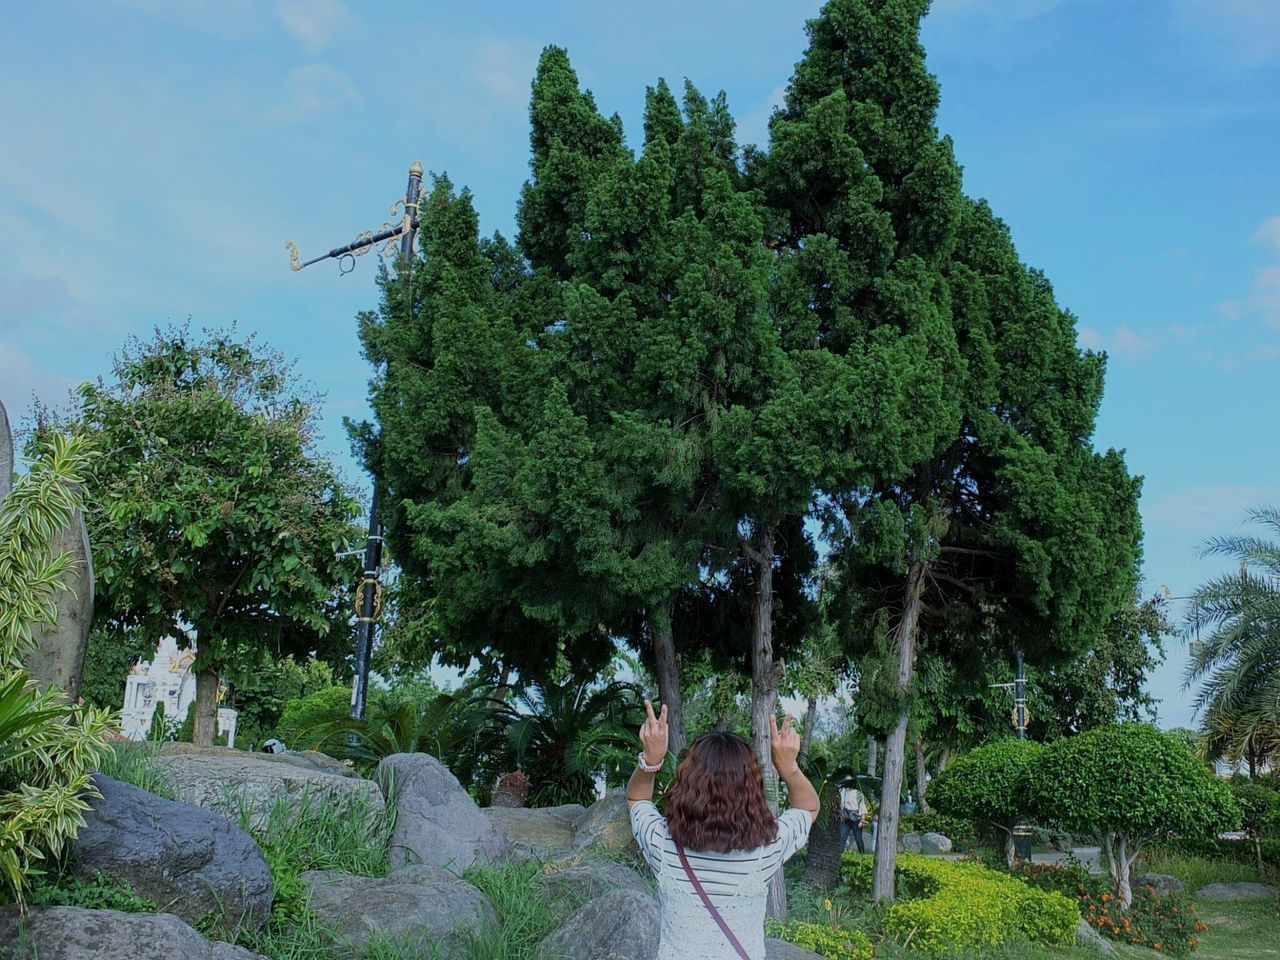 tree, growth, day, outdoors, nature, green color, sky, real people, beauty in nature